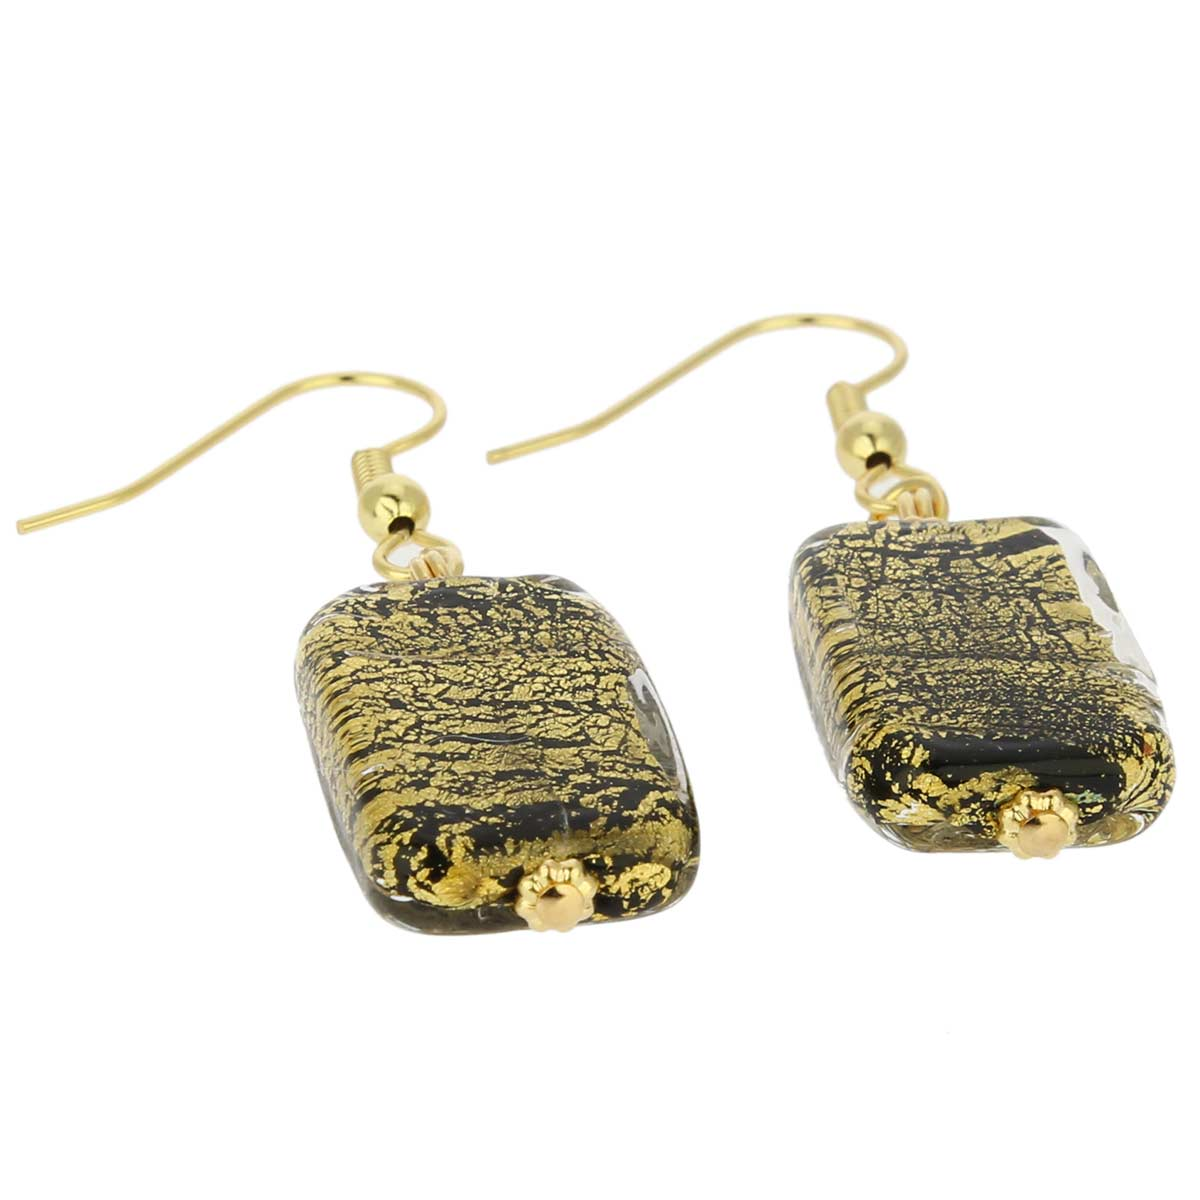 Vivaldi Murano earrings - Black and Gold